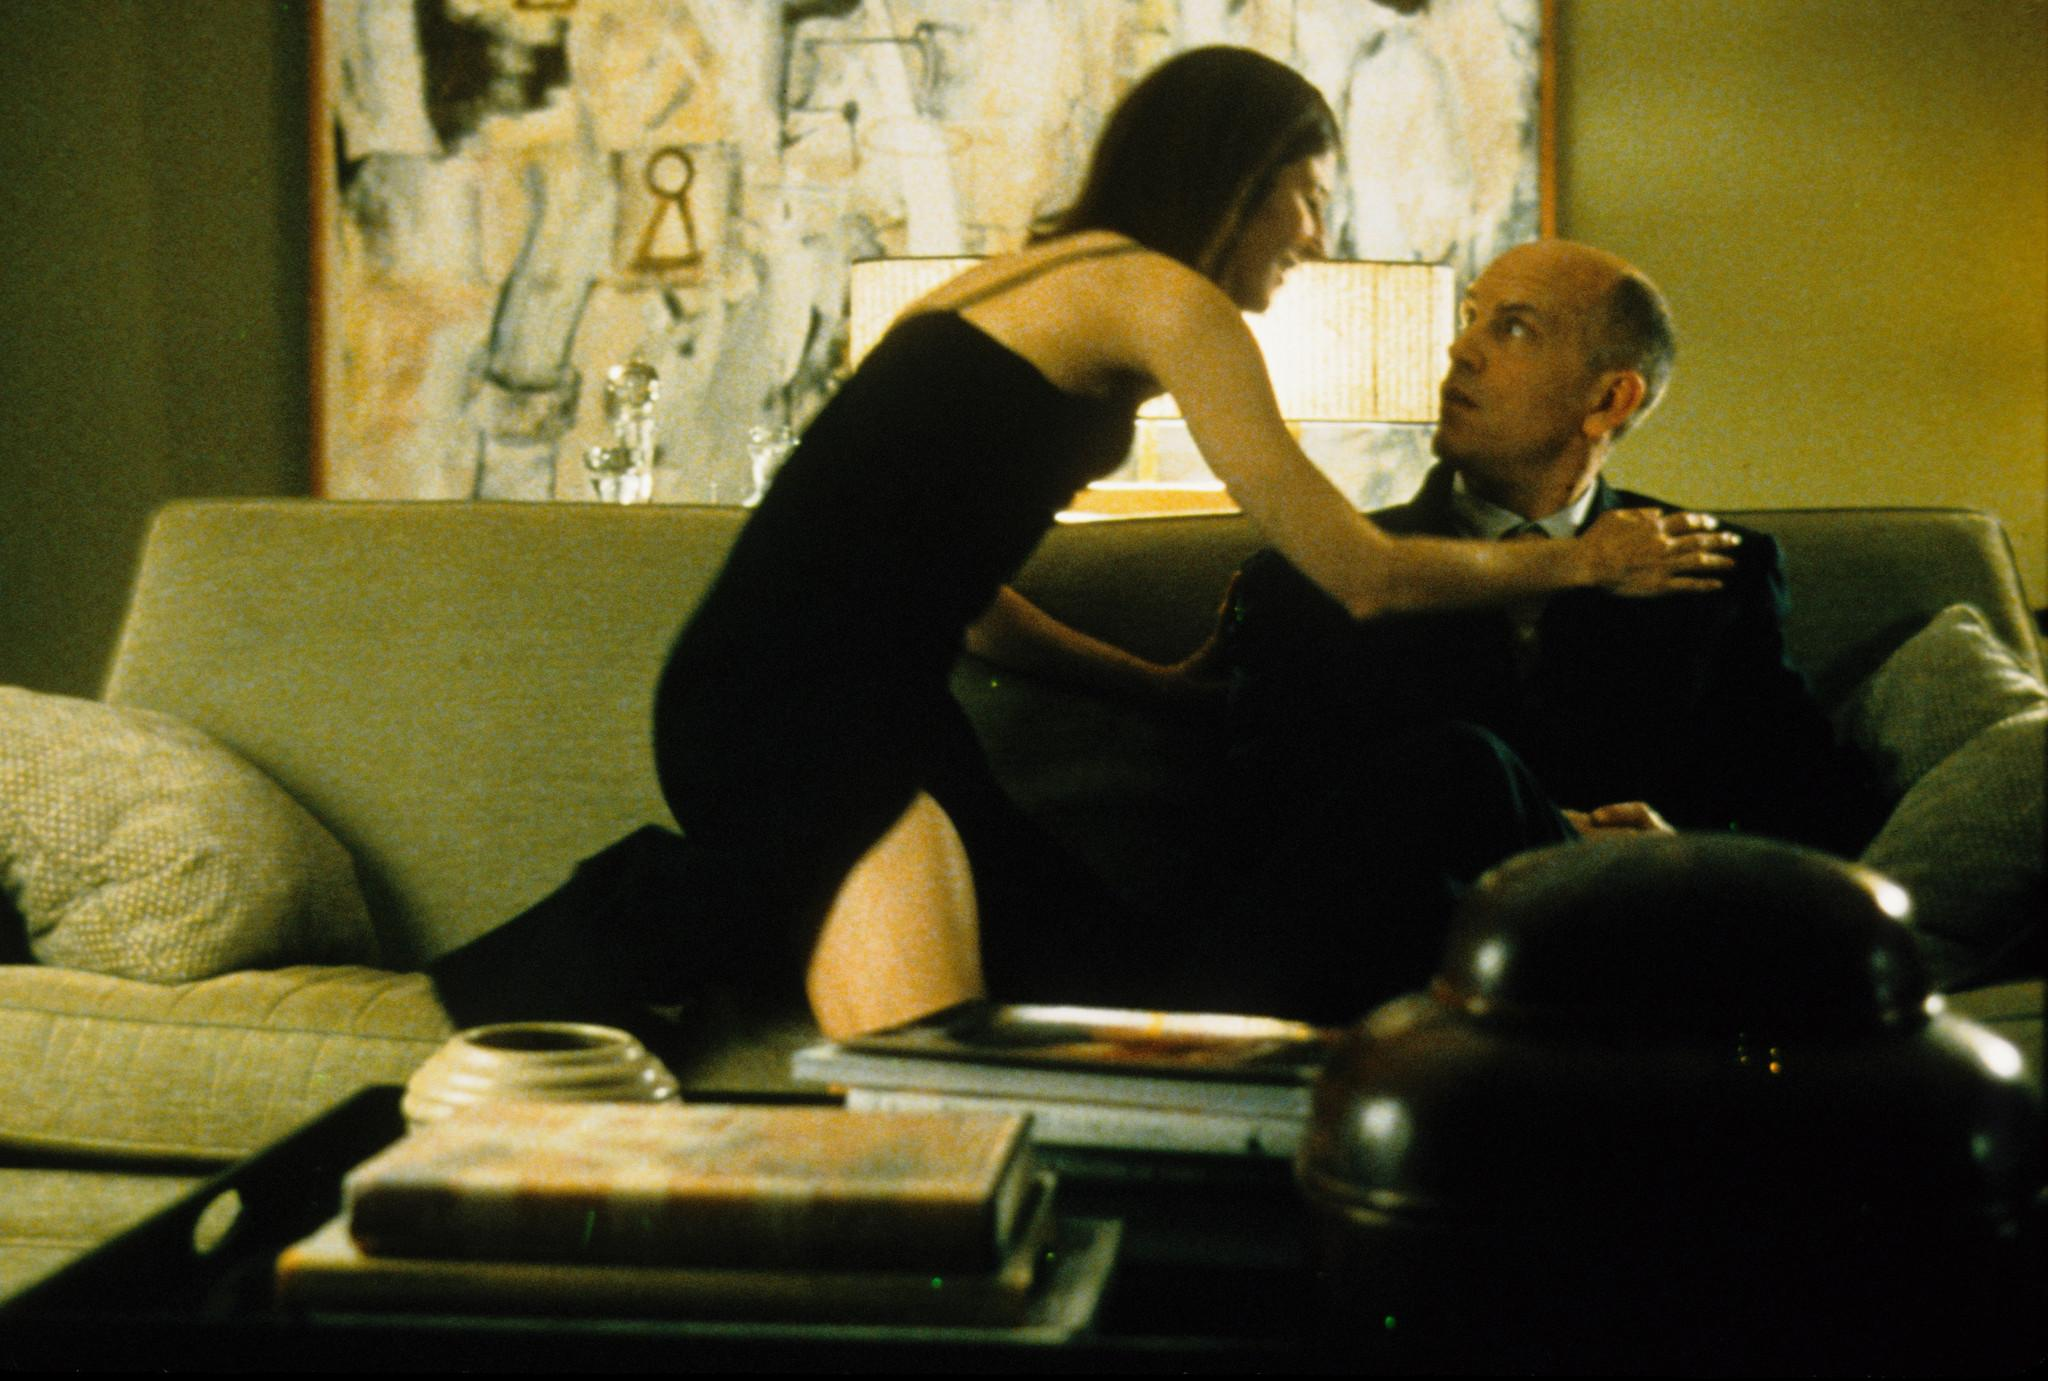 still-of-john-malkovich-and-catherine-keener-in-being-john-malkovich-1999-large-picture